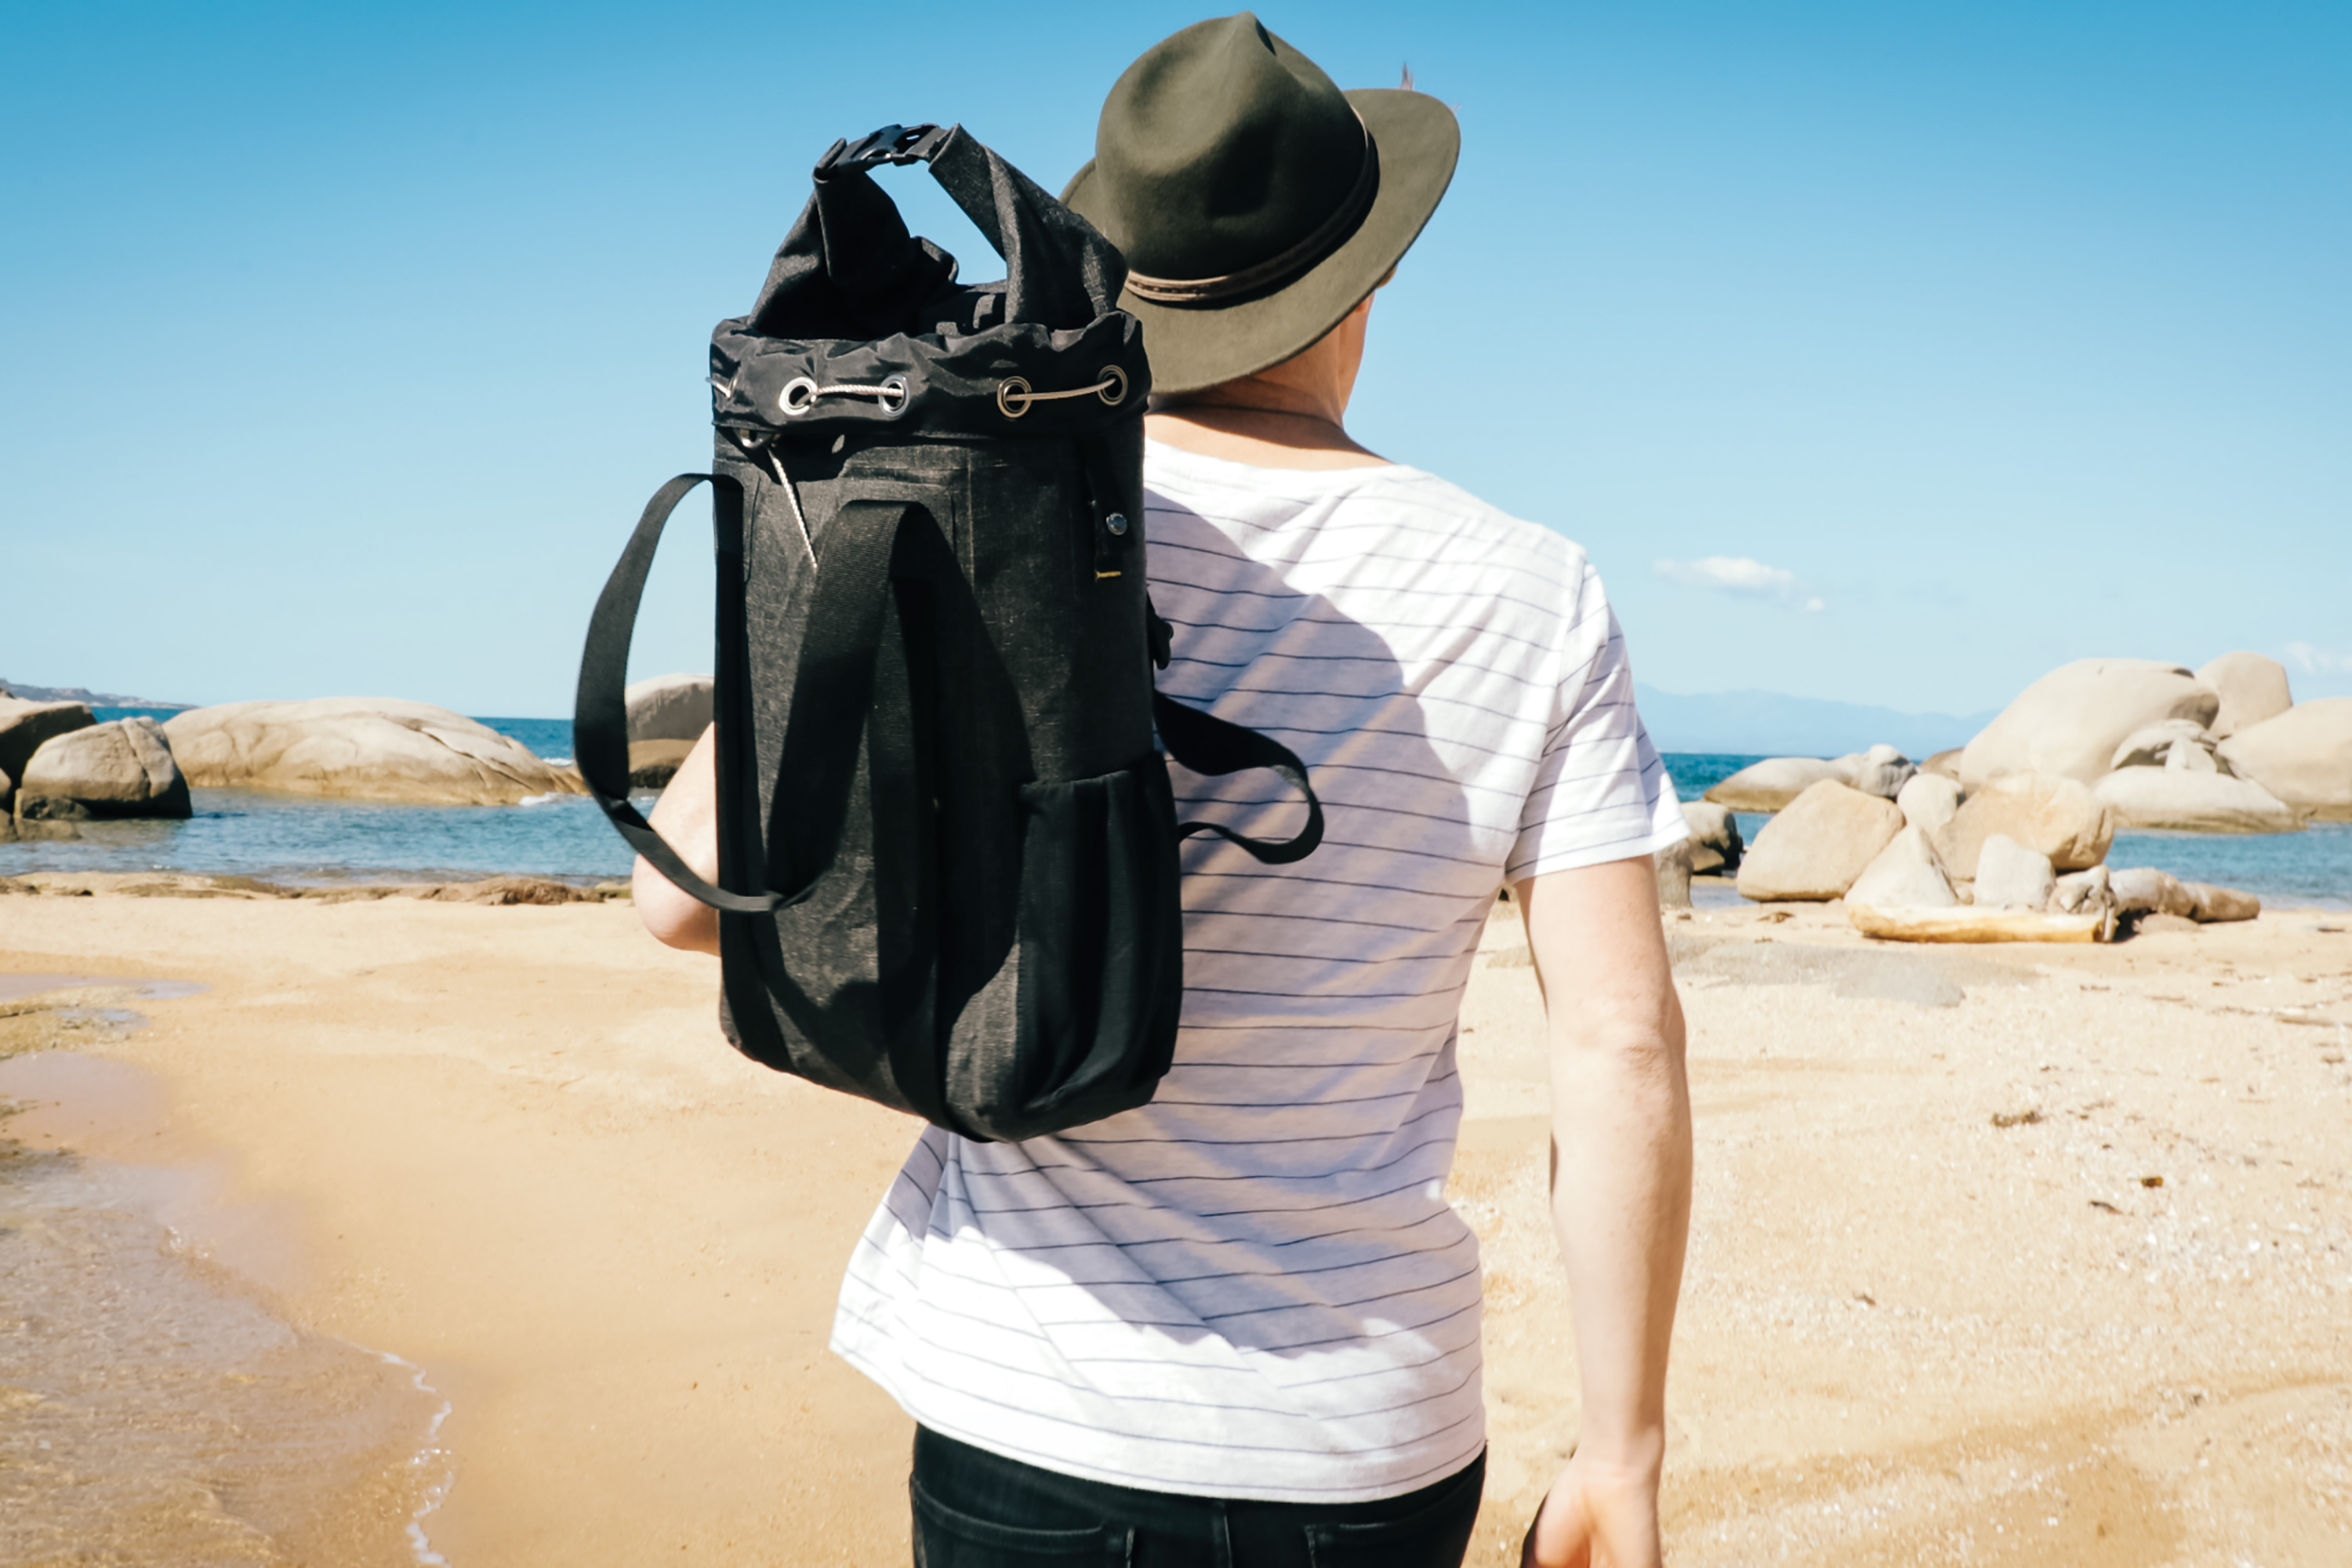 The World's First Water-Resistant, Anti-Theft Adventure Bags